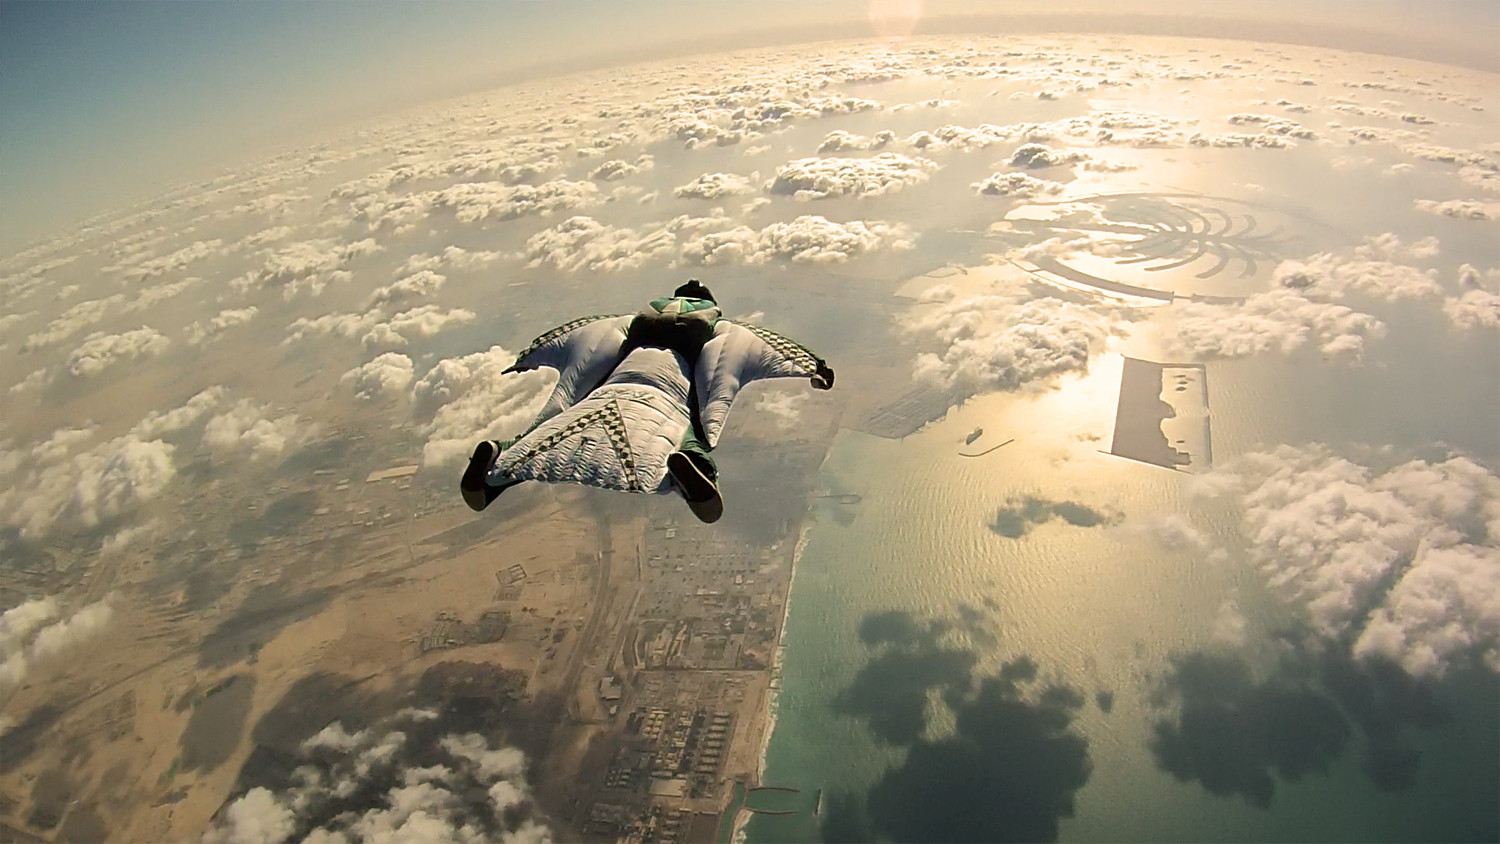 Oscar Lozada over the Dubai coastline